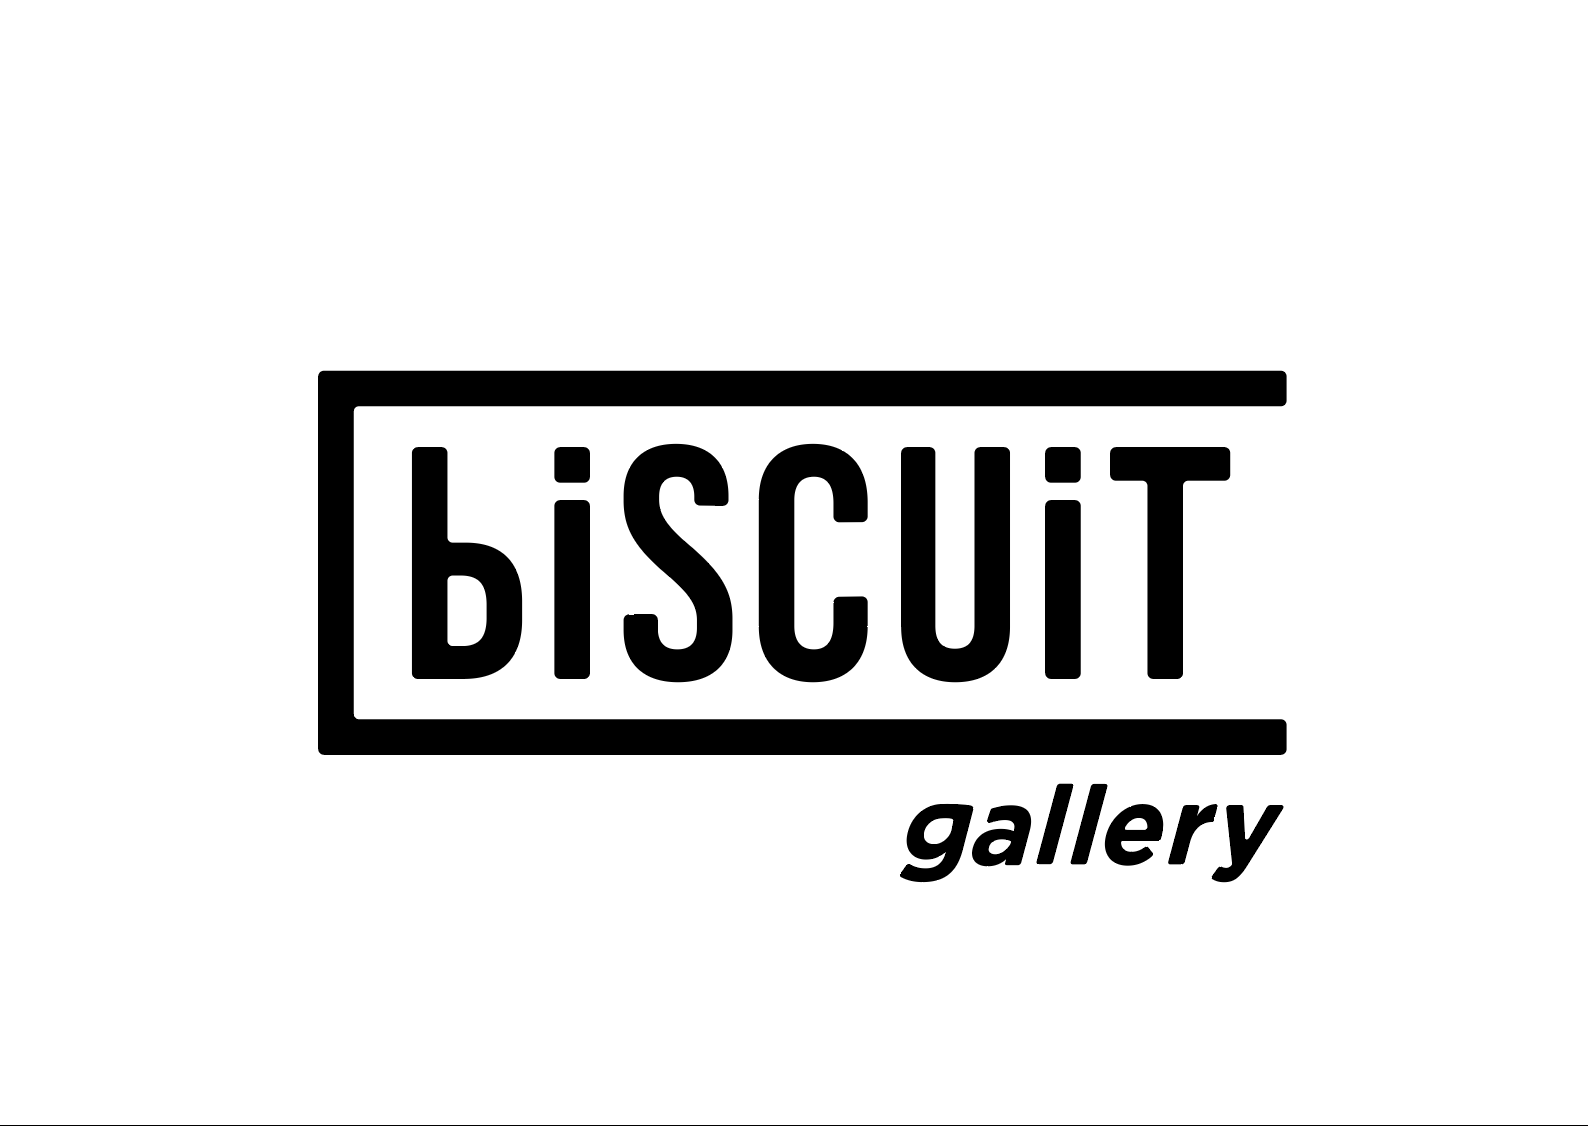 【News】biscuit gallery オープンのお知らせ